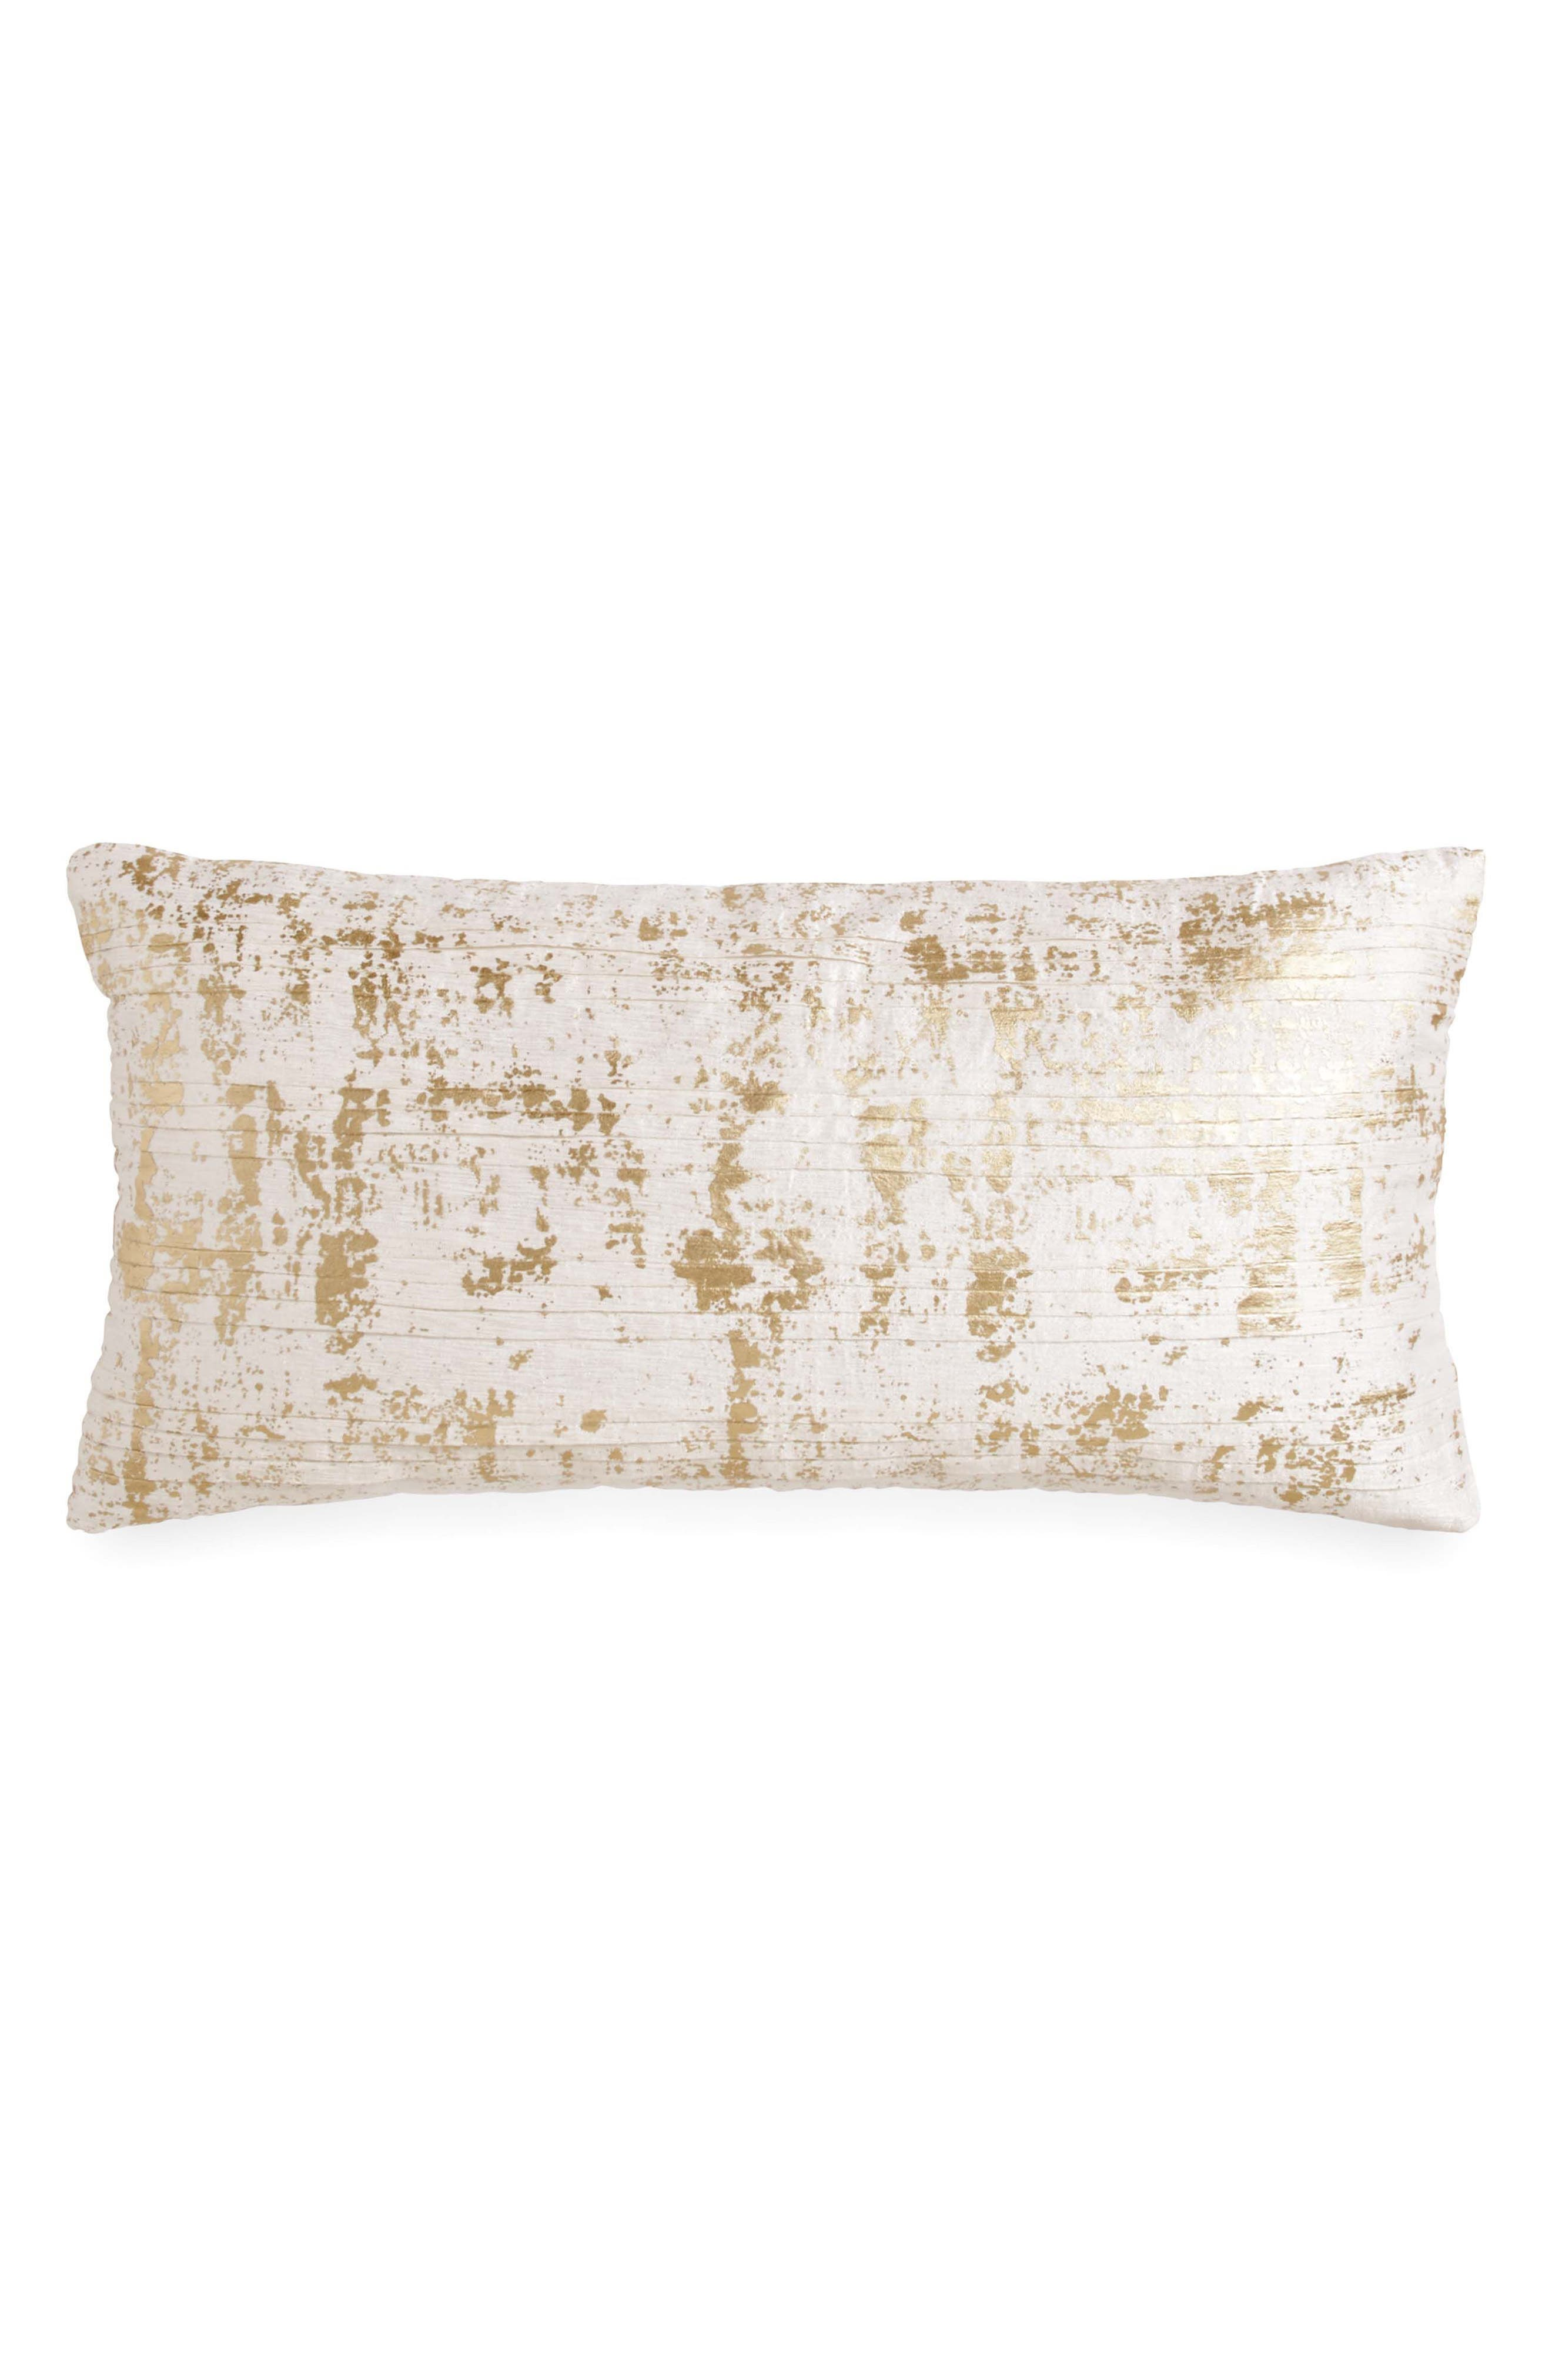 Opal Essence Pillow,                         Main,                         color, IVORY